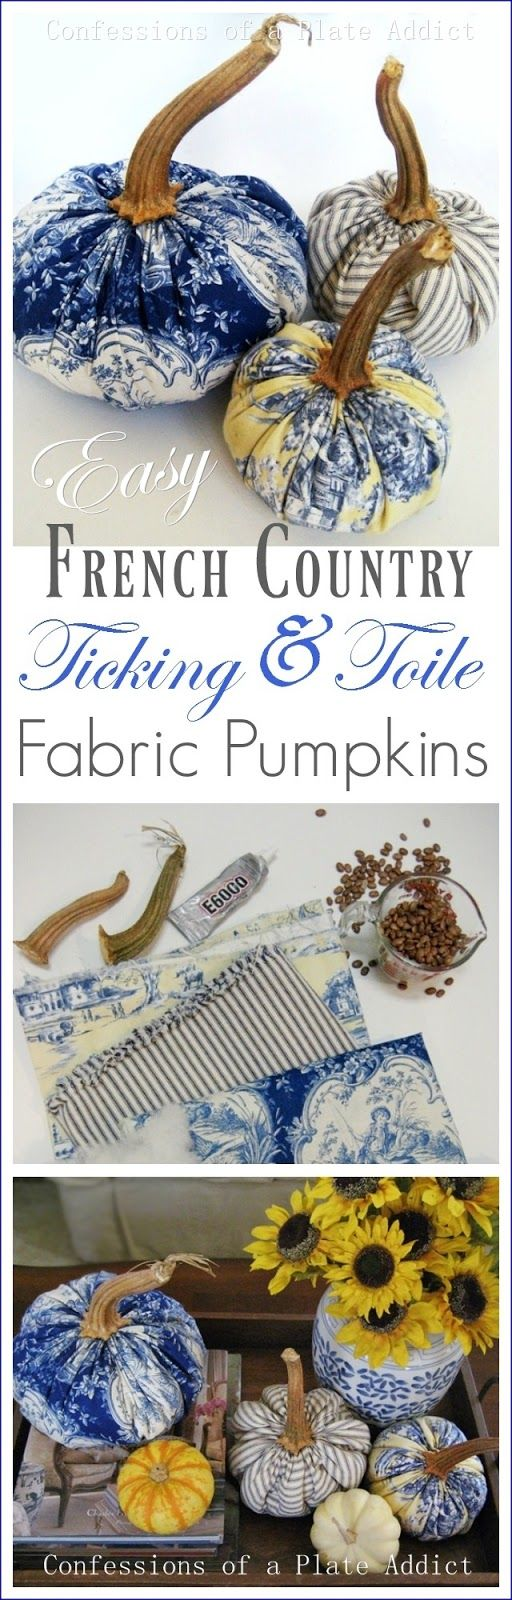 Today I am sharing the tutorial for making the Ticking and Toile Fabric Pumpkins that showed you during our FRENCH COUNTRY FALL TOUR . I lo...